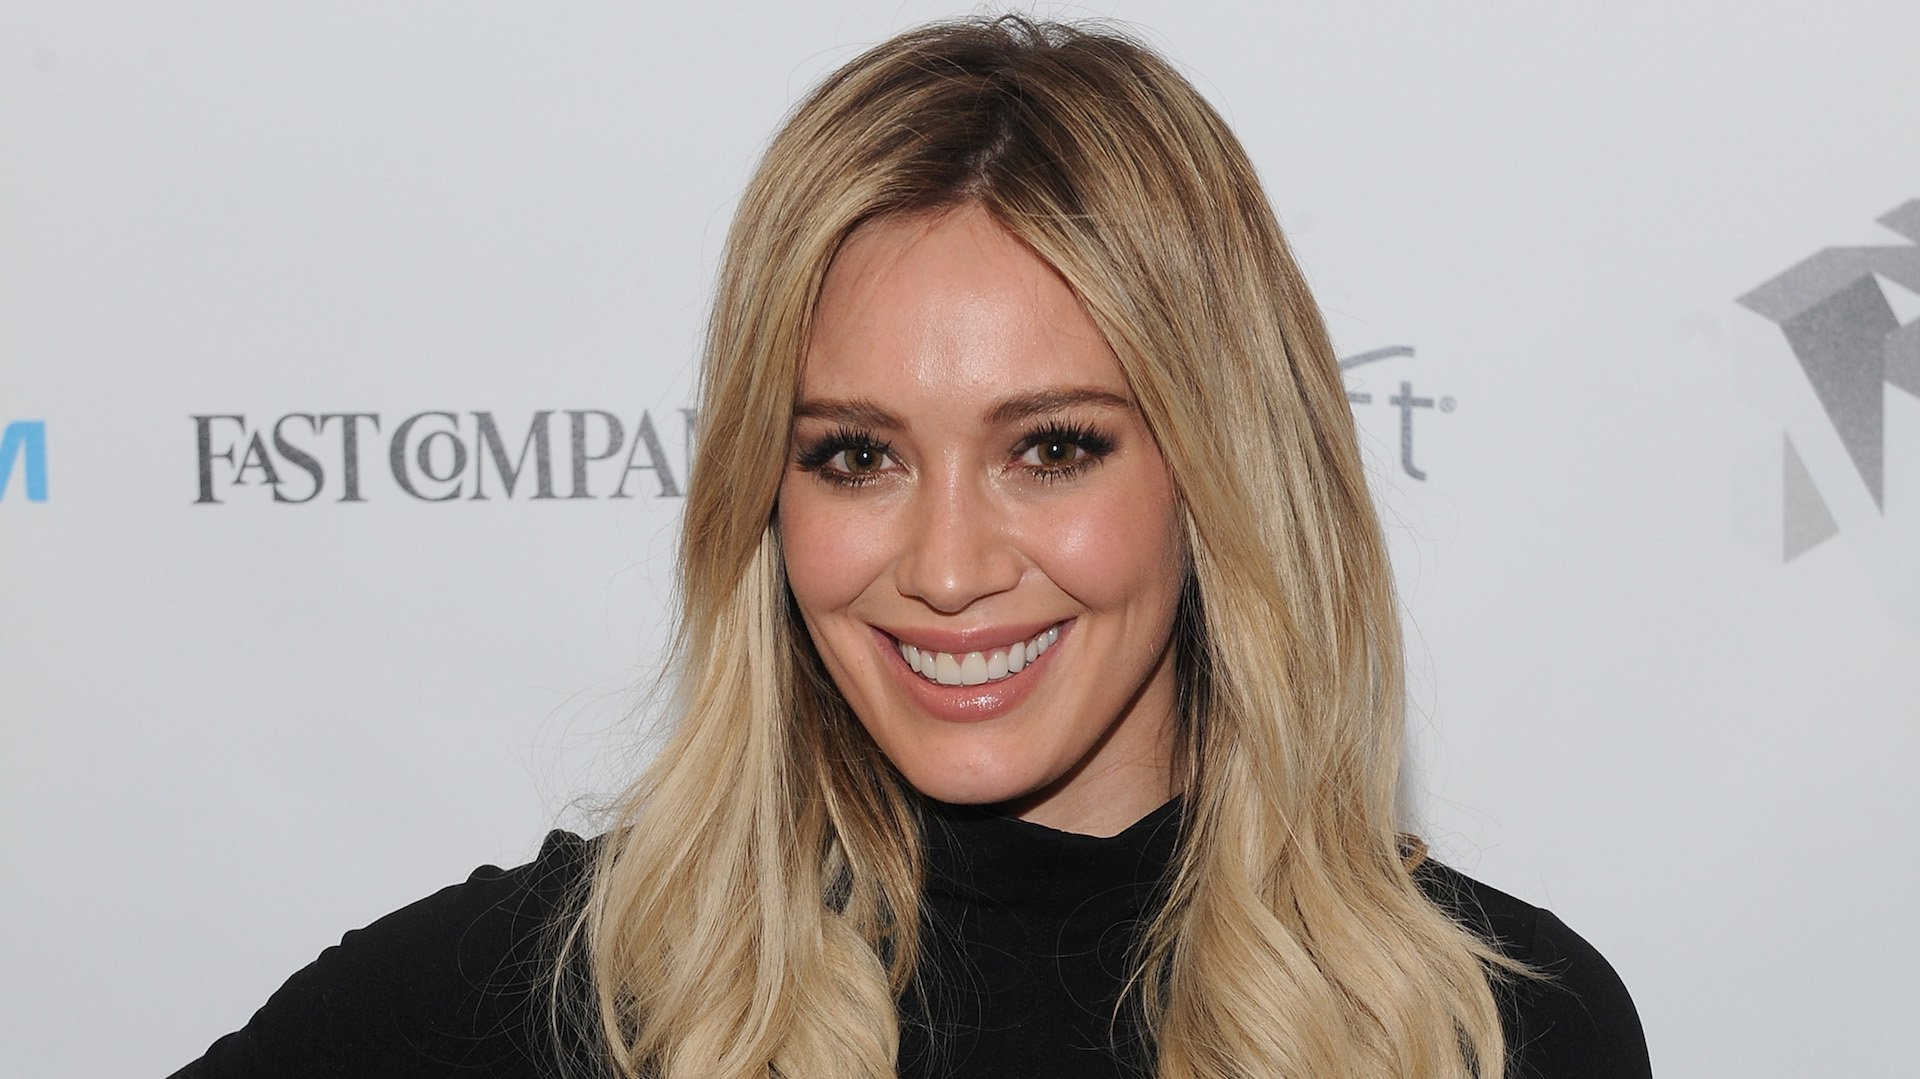 Hilary Duff's Recreation of Rachel McAdams' Iconic Breast-Pumping Photo Is Epic